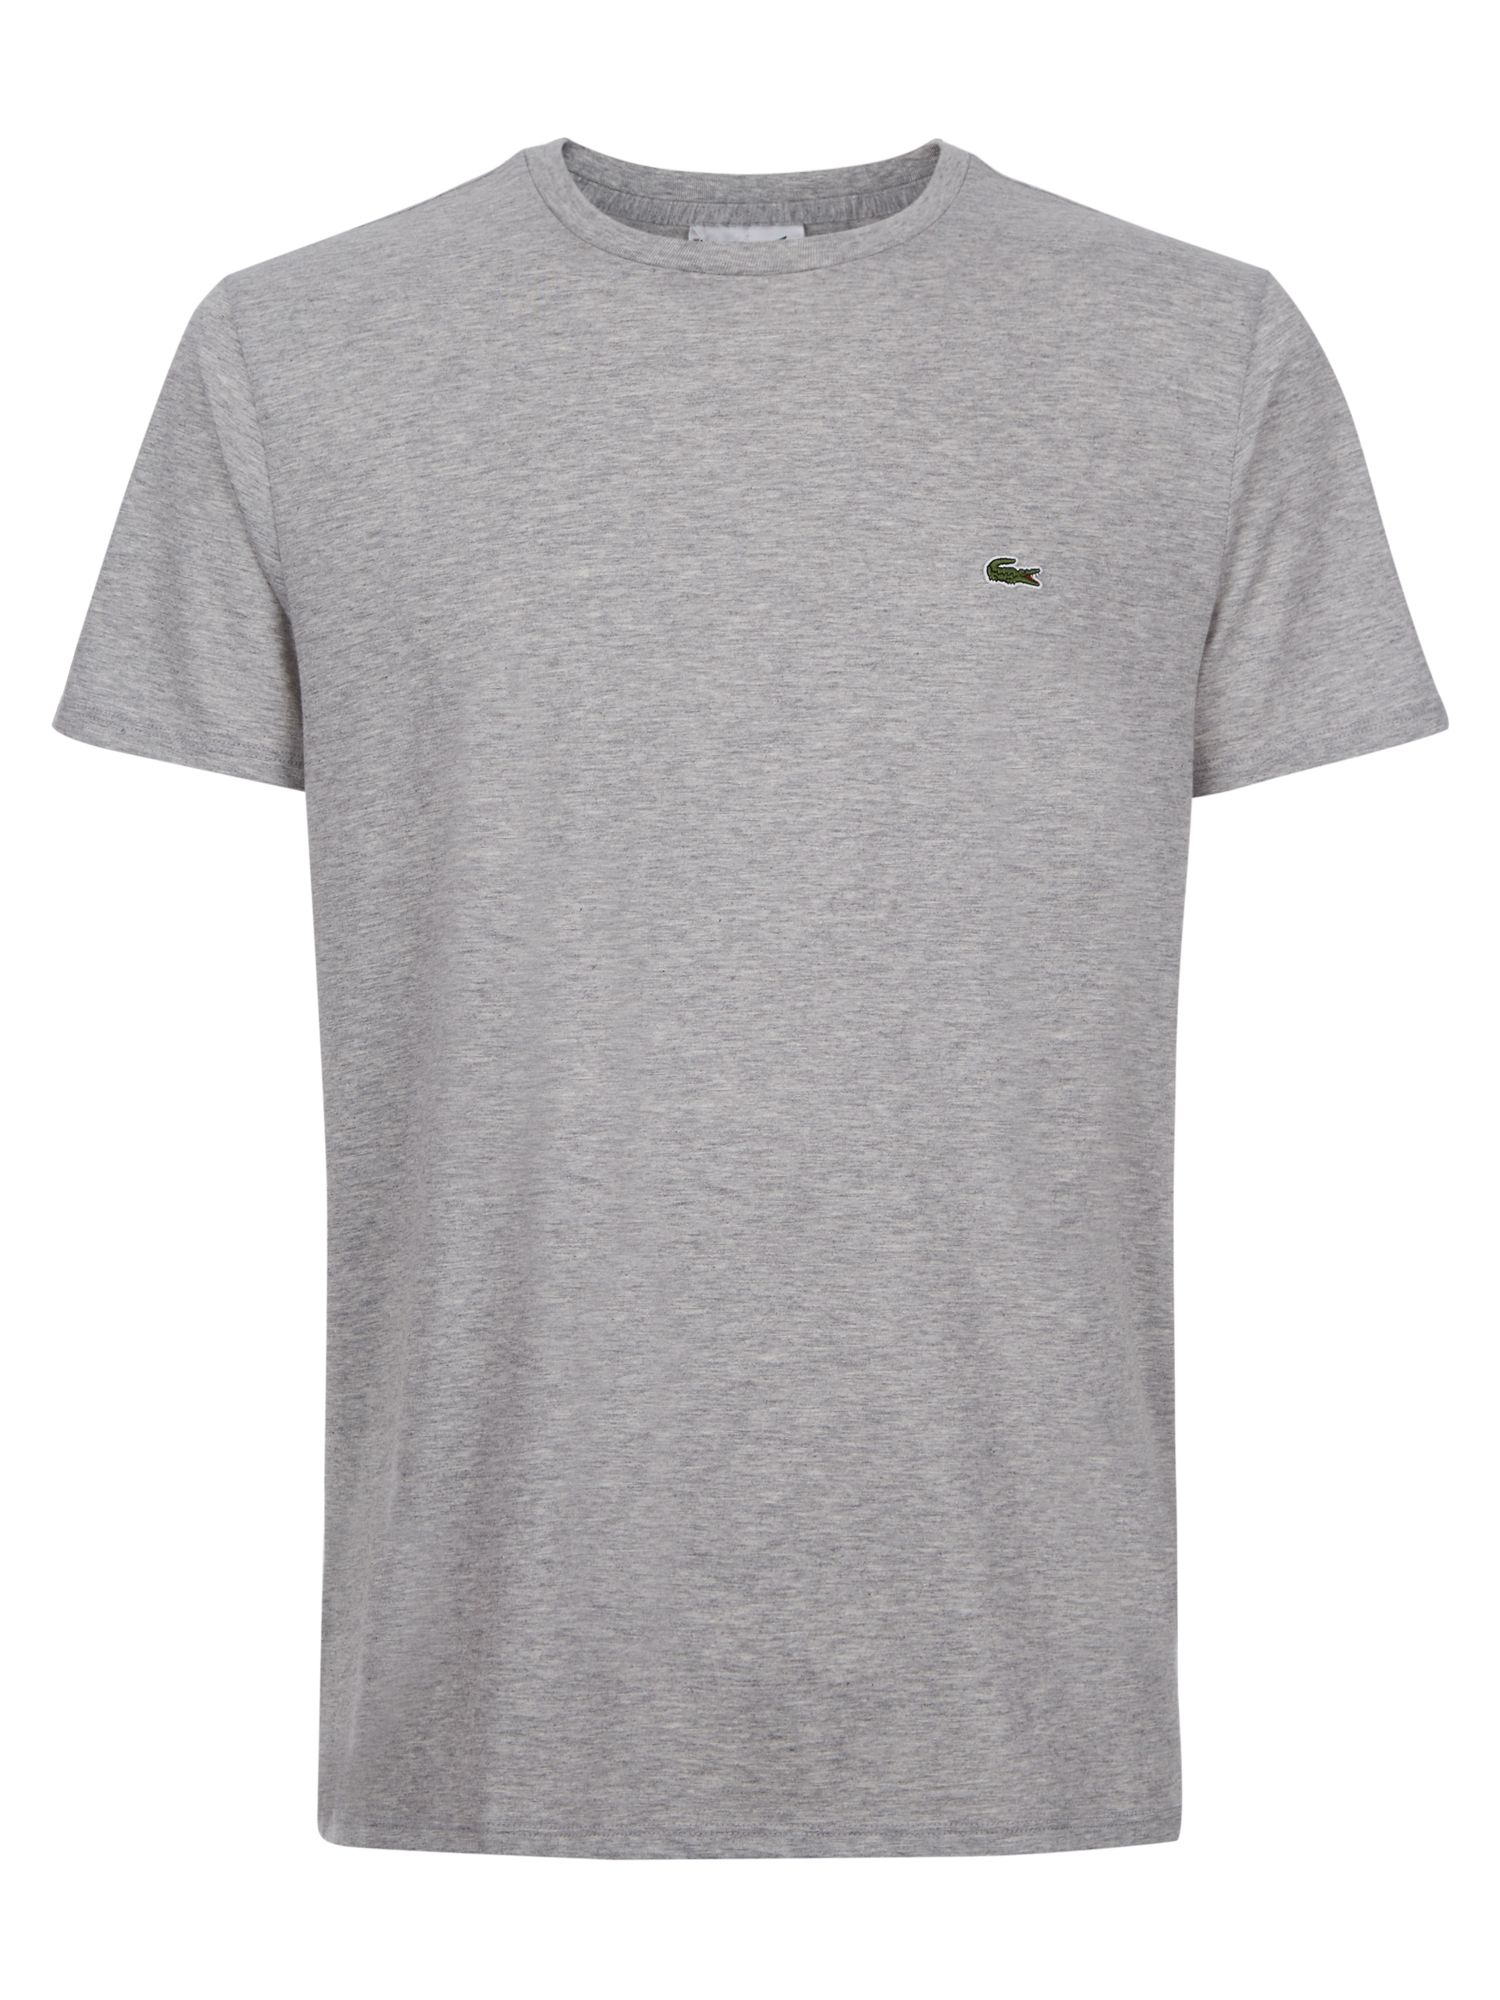 Men's Lacoste Crew Neck Cotton T-shirt, Silver Chine